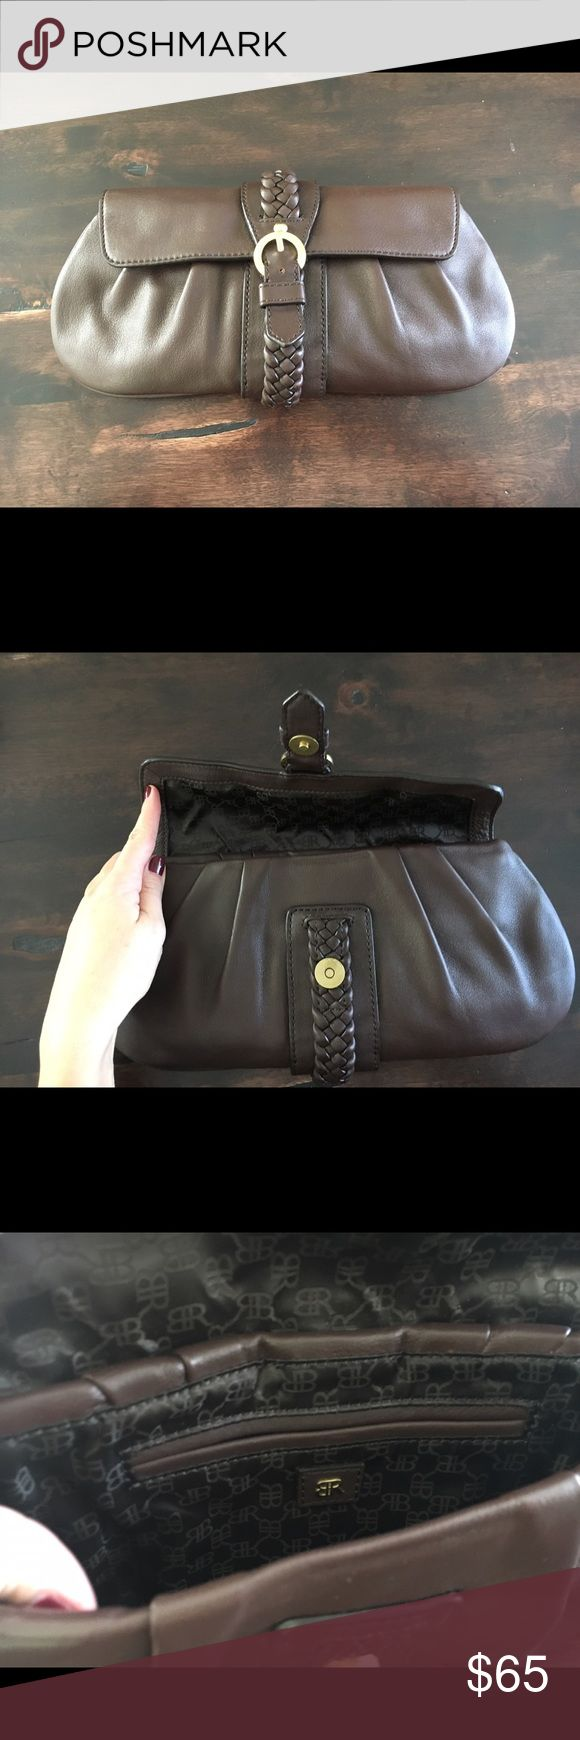 Banana Republic Chocolate Brown Leather Clutch Beautiful dark brown leather with braided detail. Snap closure. Fabric lined. Interior has small slot for credit cards or keys. Banana Republic Bags Clutches & Wristlets